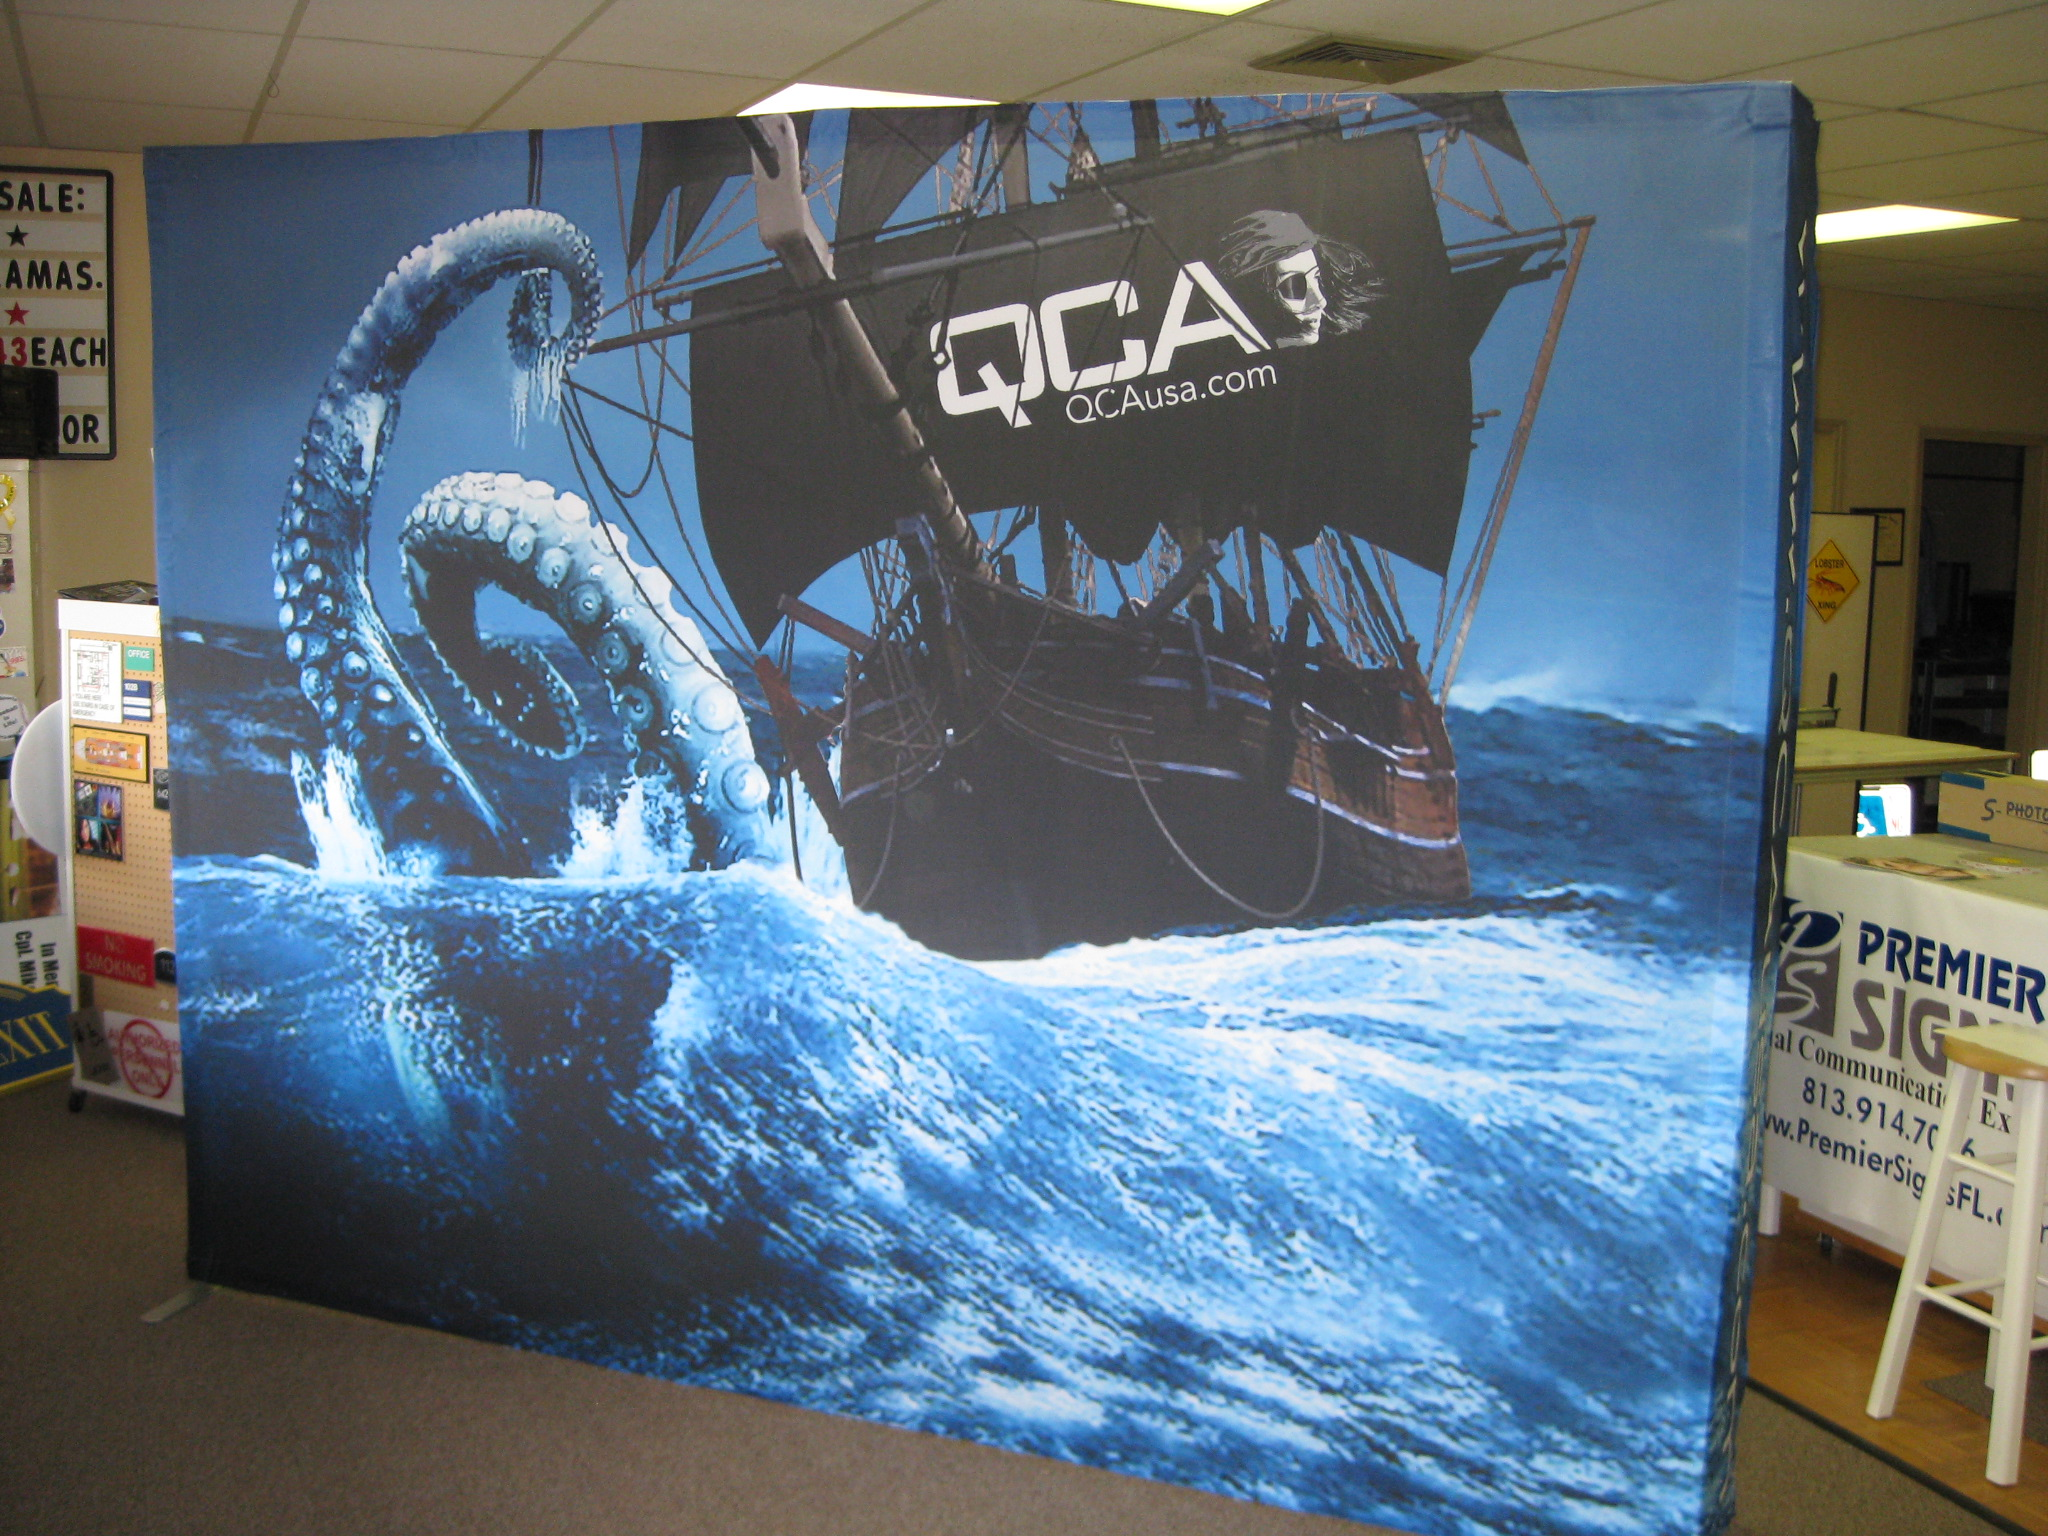 Booth Backdrop By Premier Signs Tampa St Petersburg